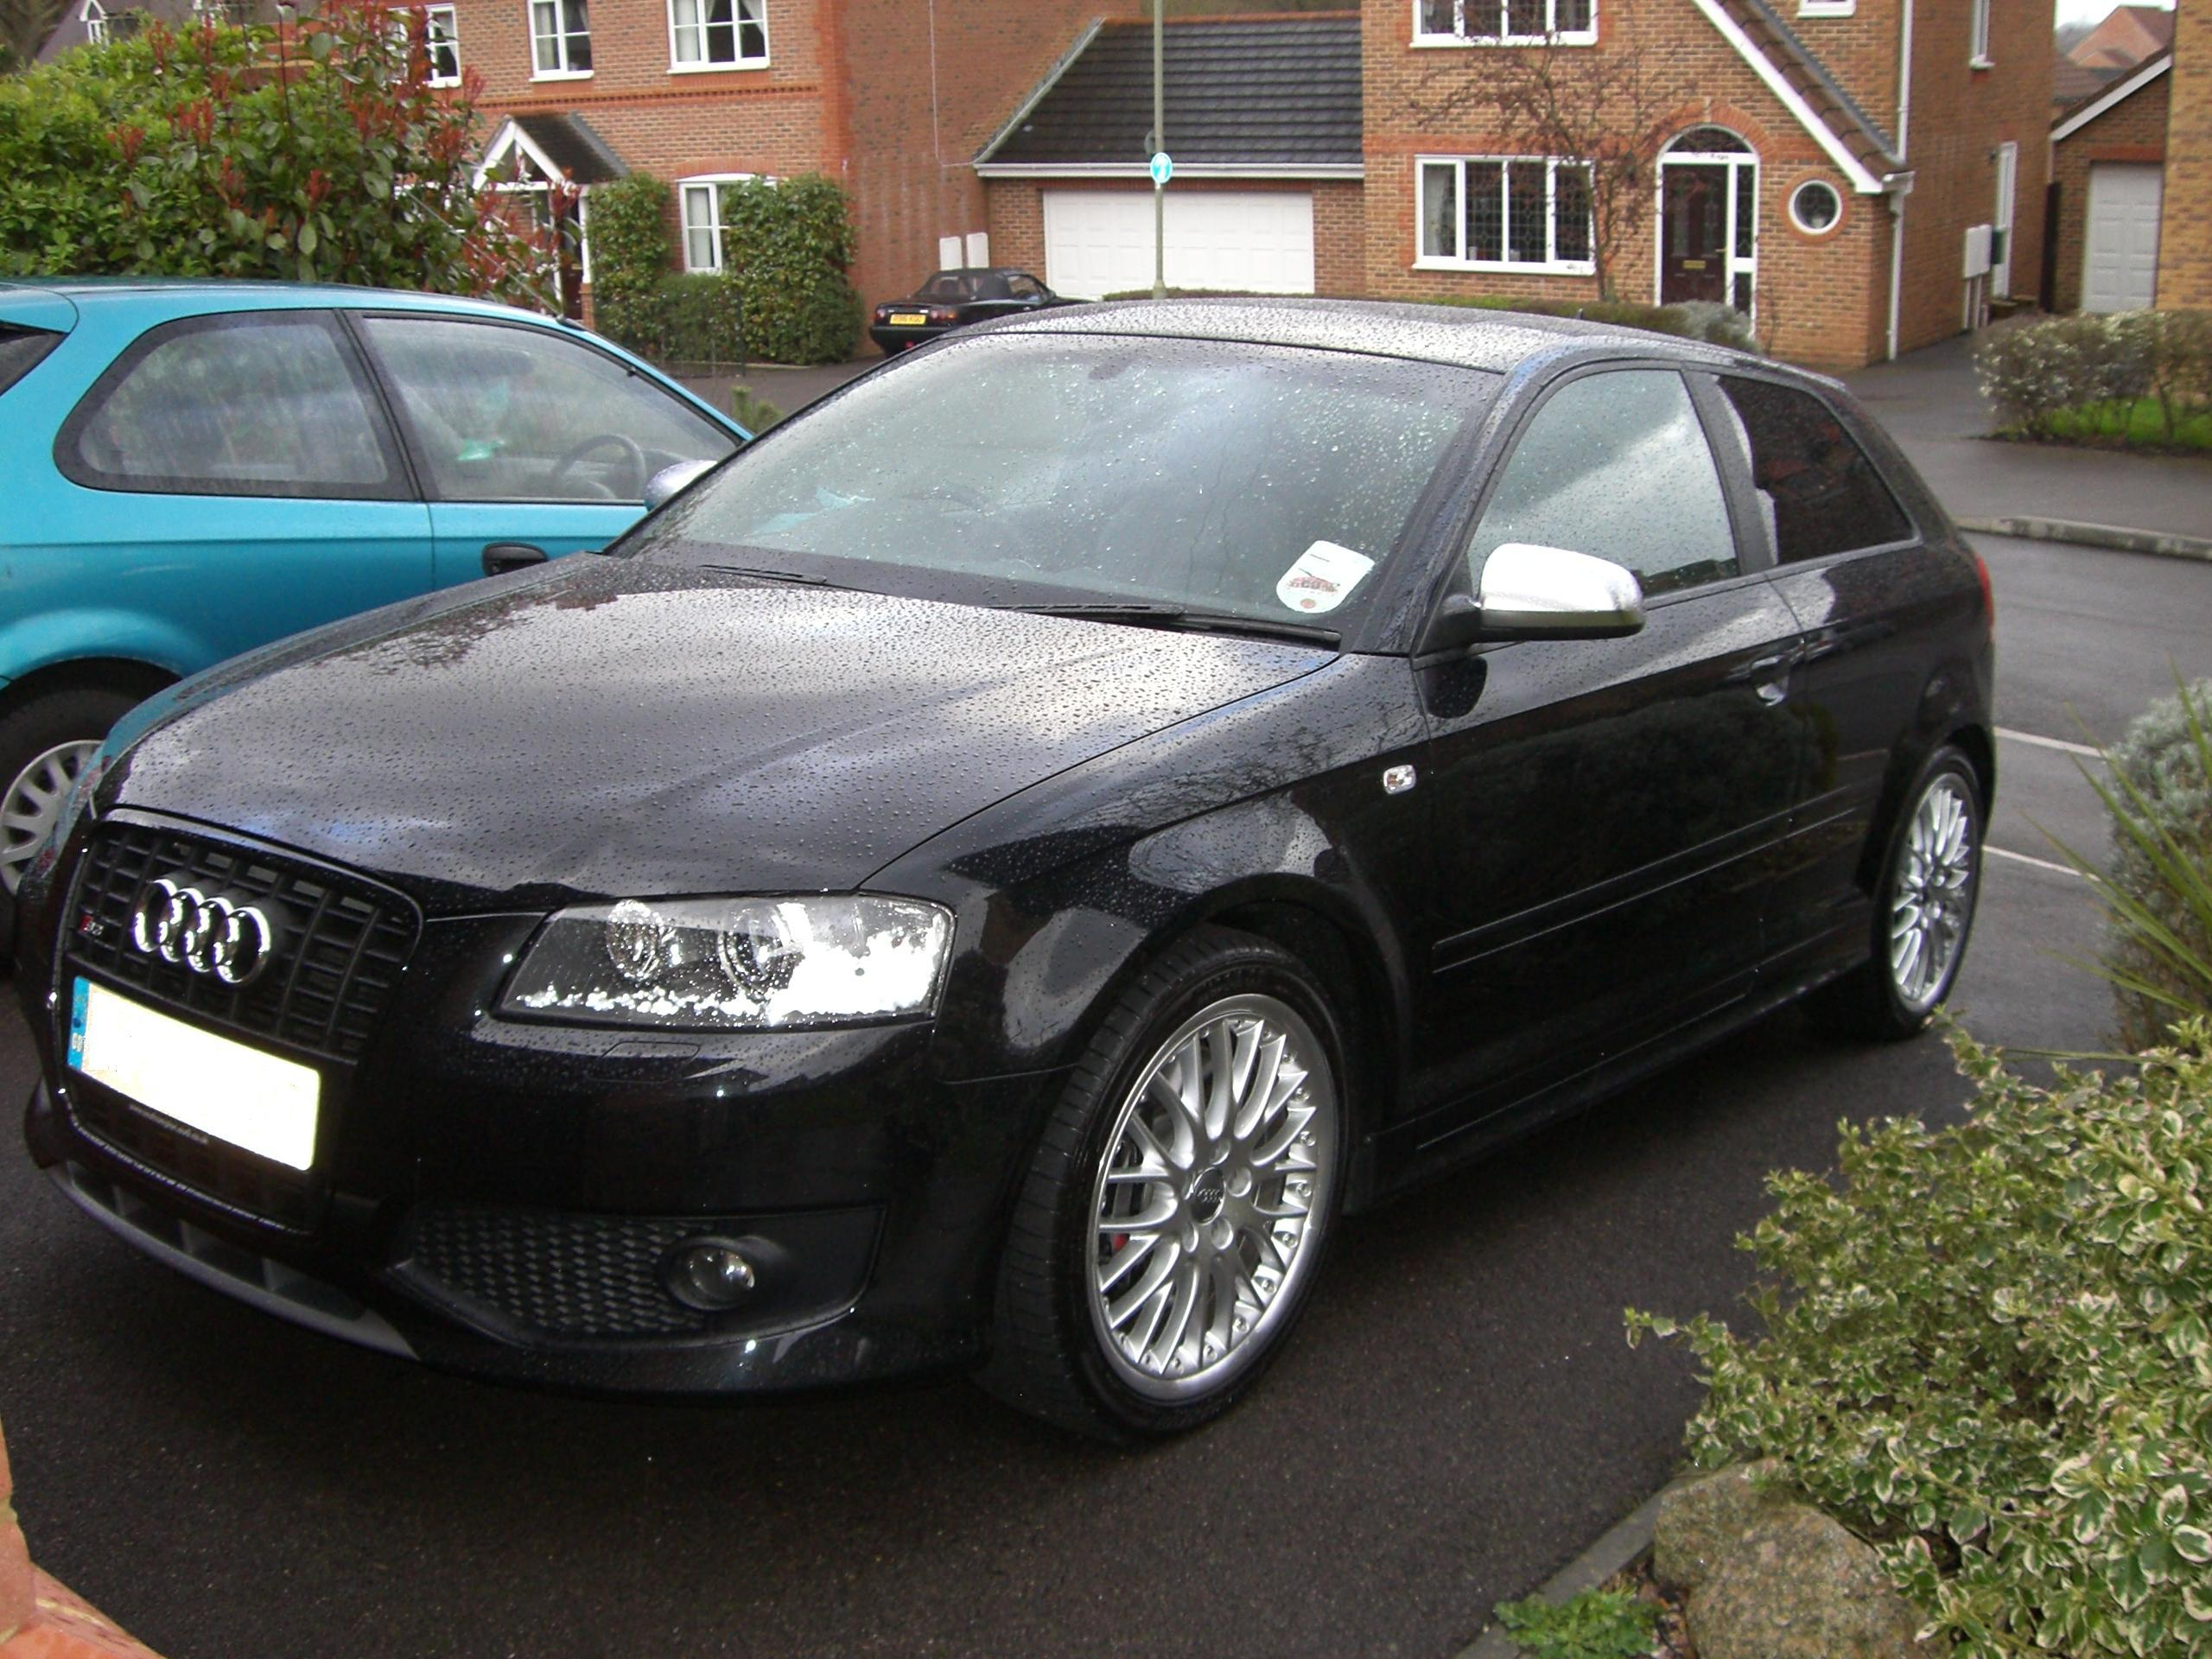 mcchaffy 2007 audi s3 specs photos modification info at cardomain. Black Bedroom Furniture Sets. Home Design Ideas